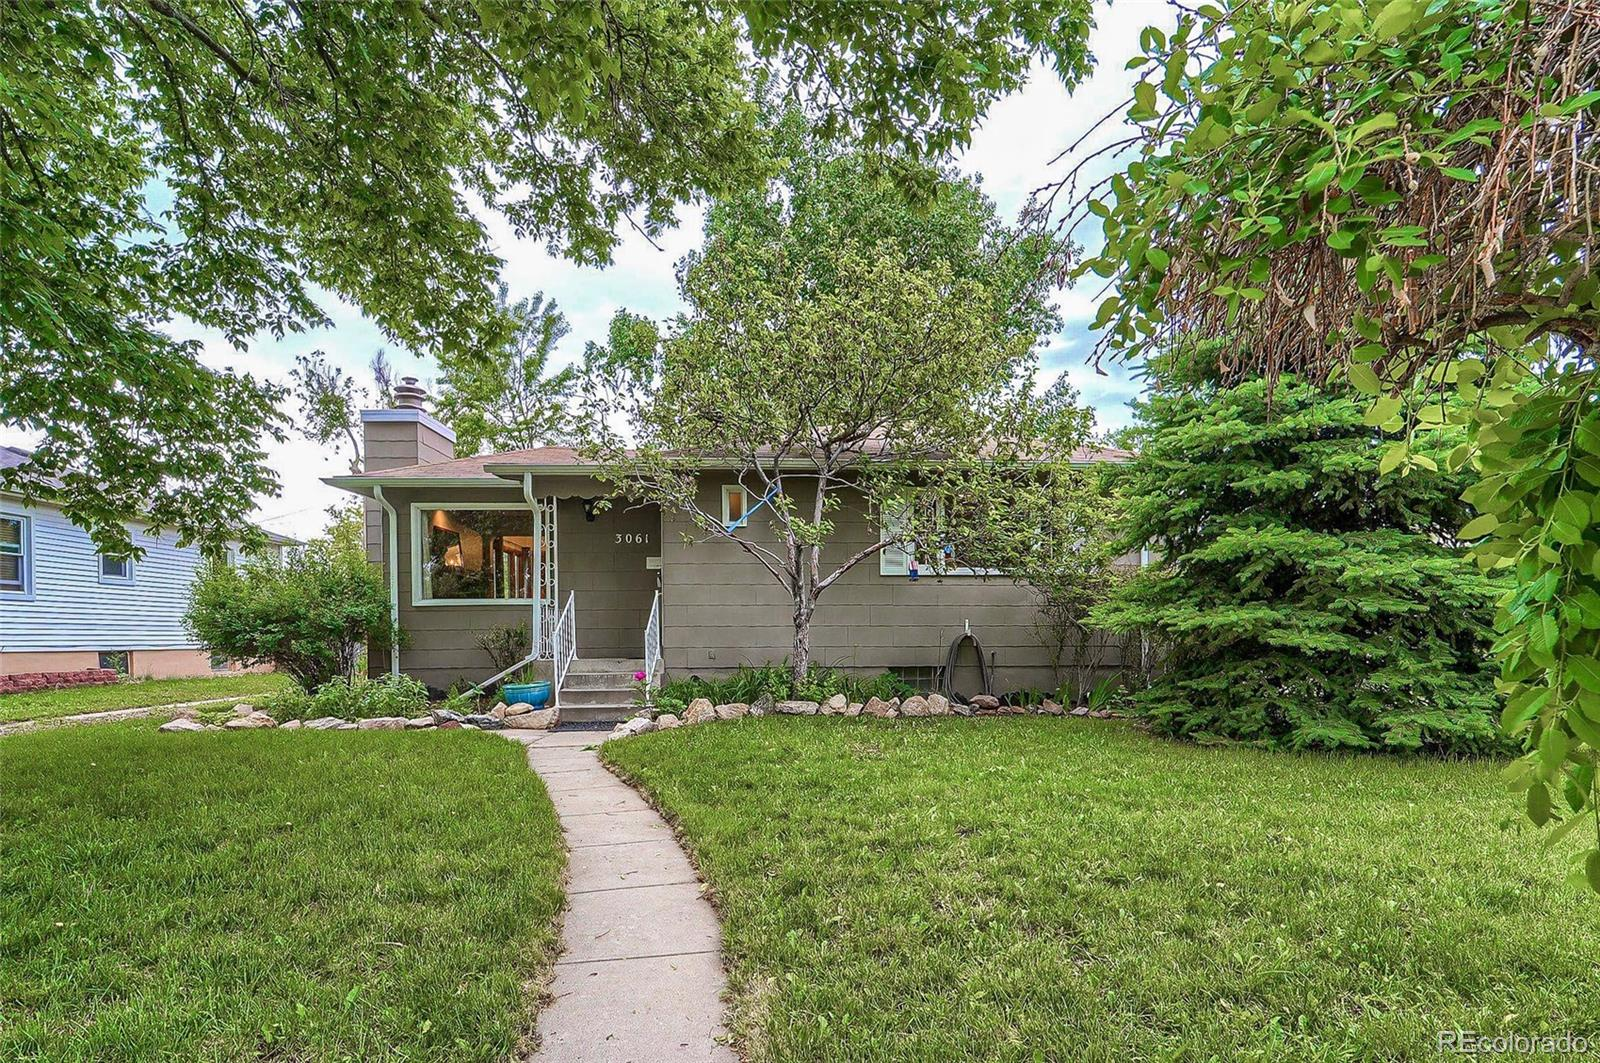 3061 S Marion Street Property Photo - Englewood, CO real estate listing